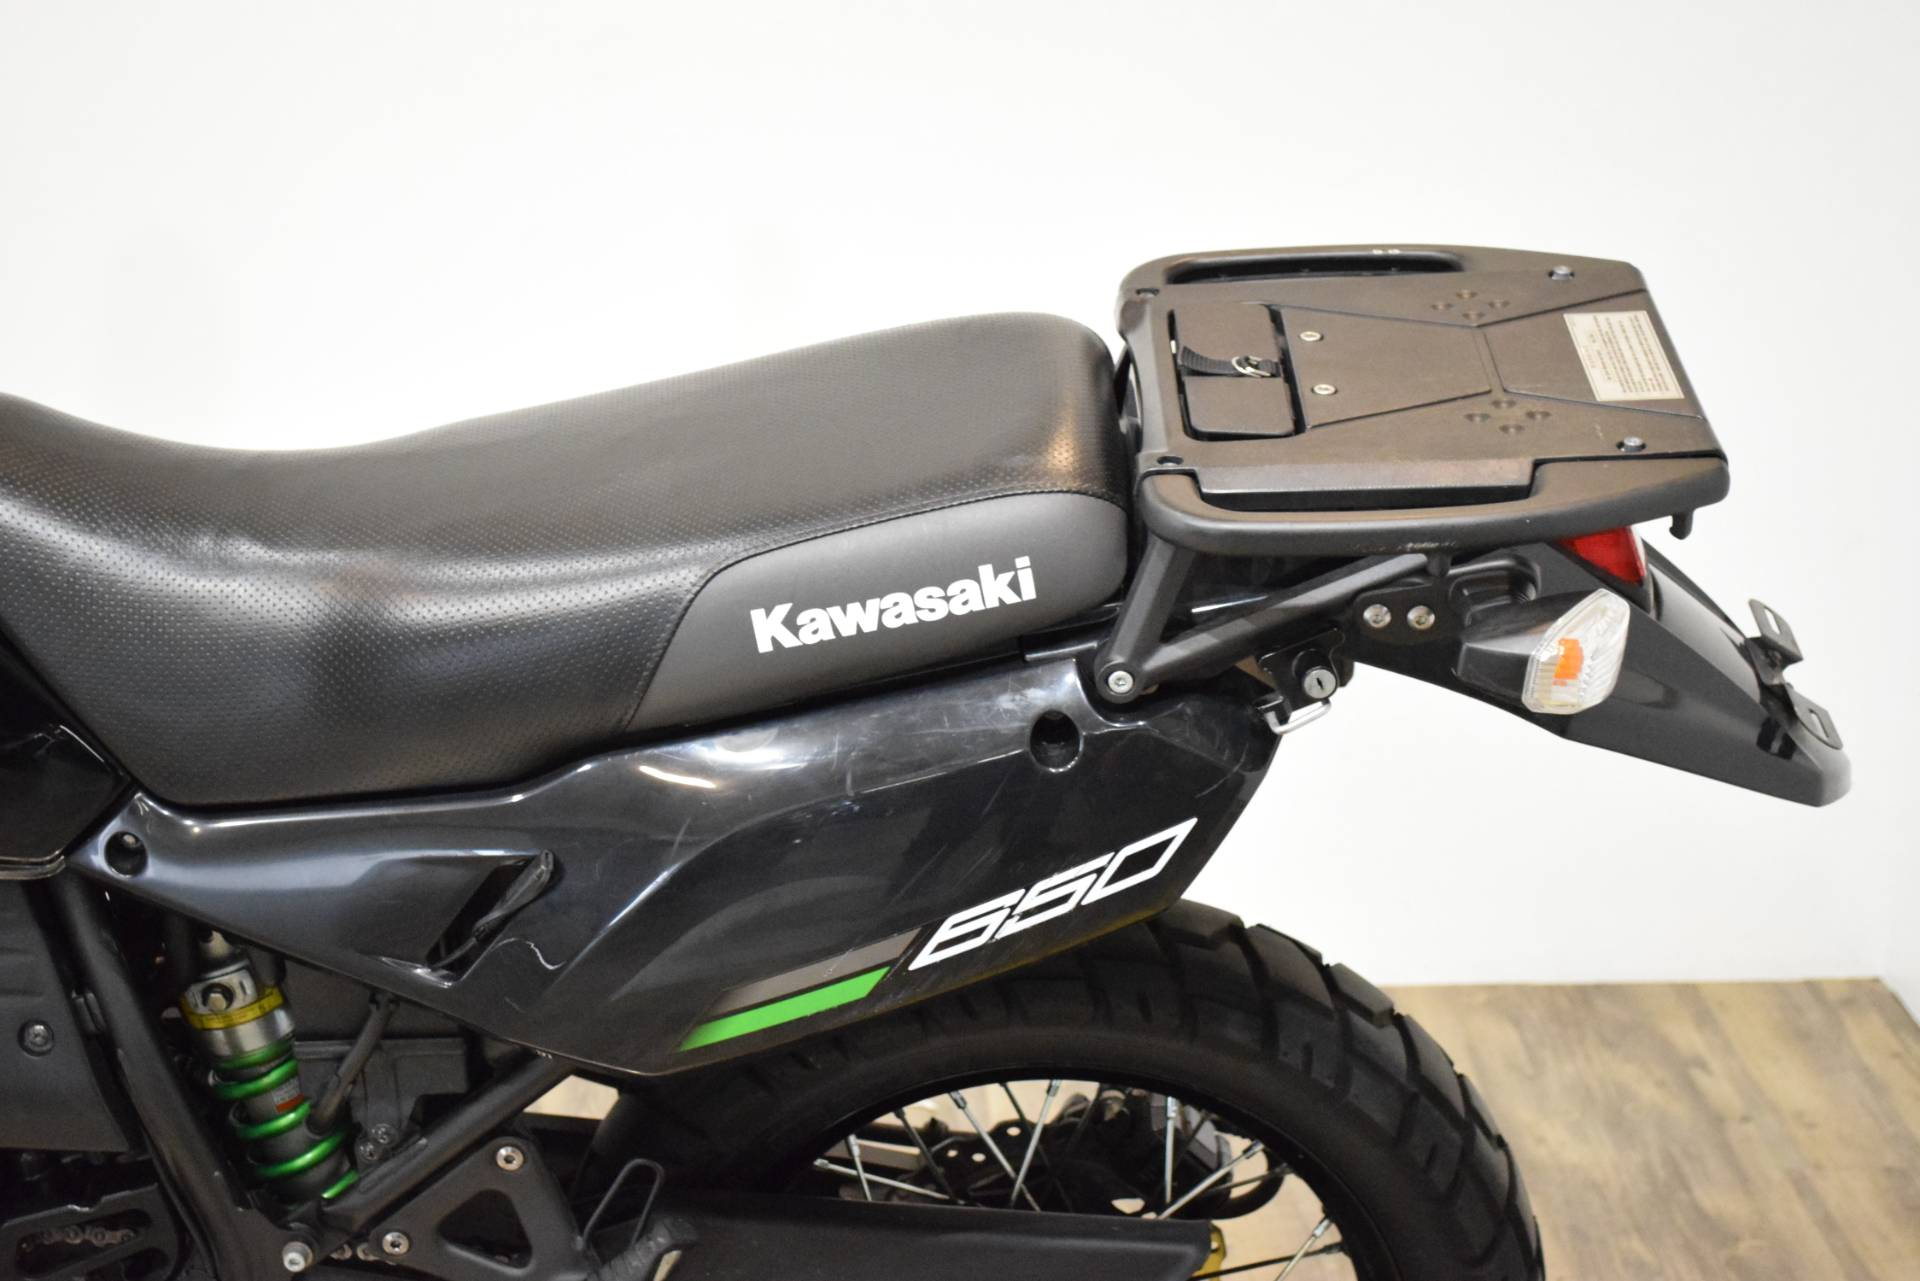 2016 Kawasaki KLR 650 in Wauconda, Illinois - Photo 19